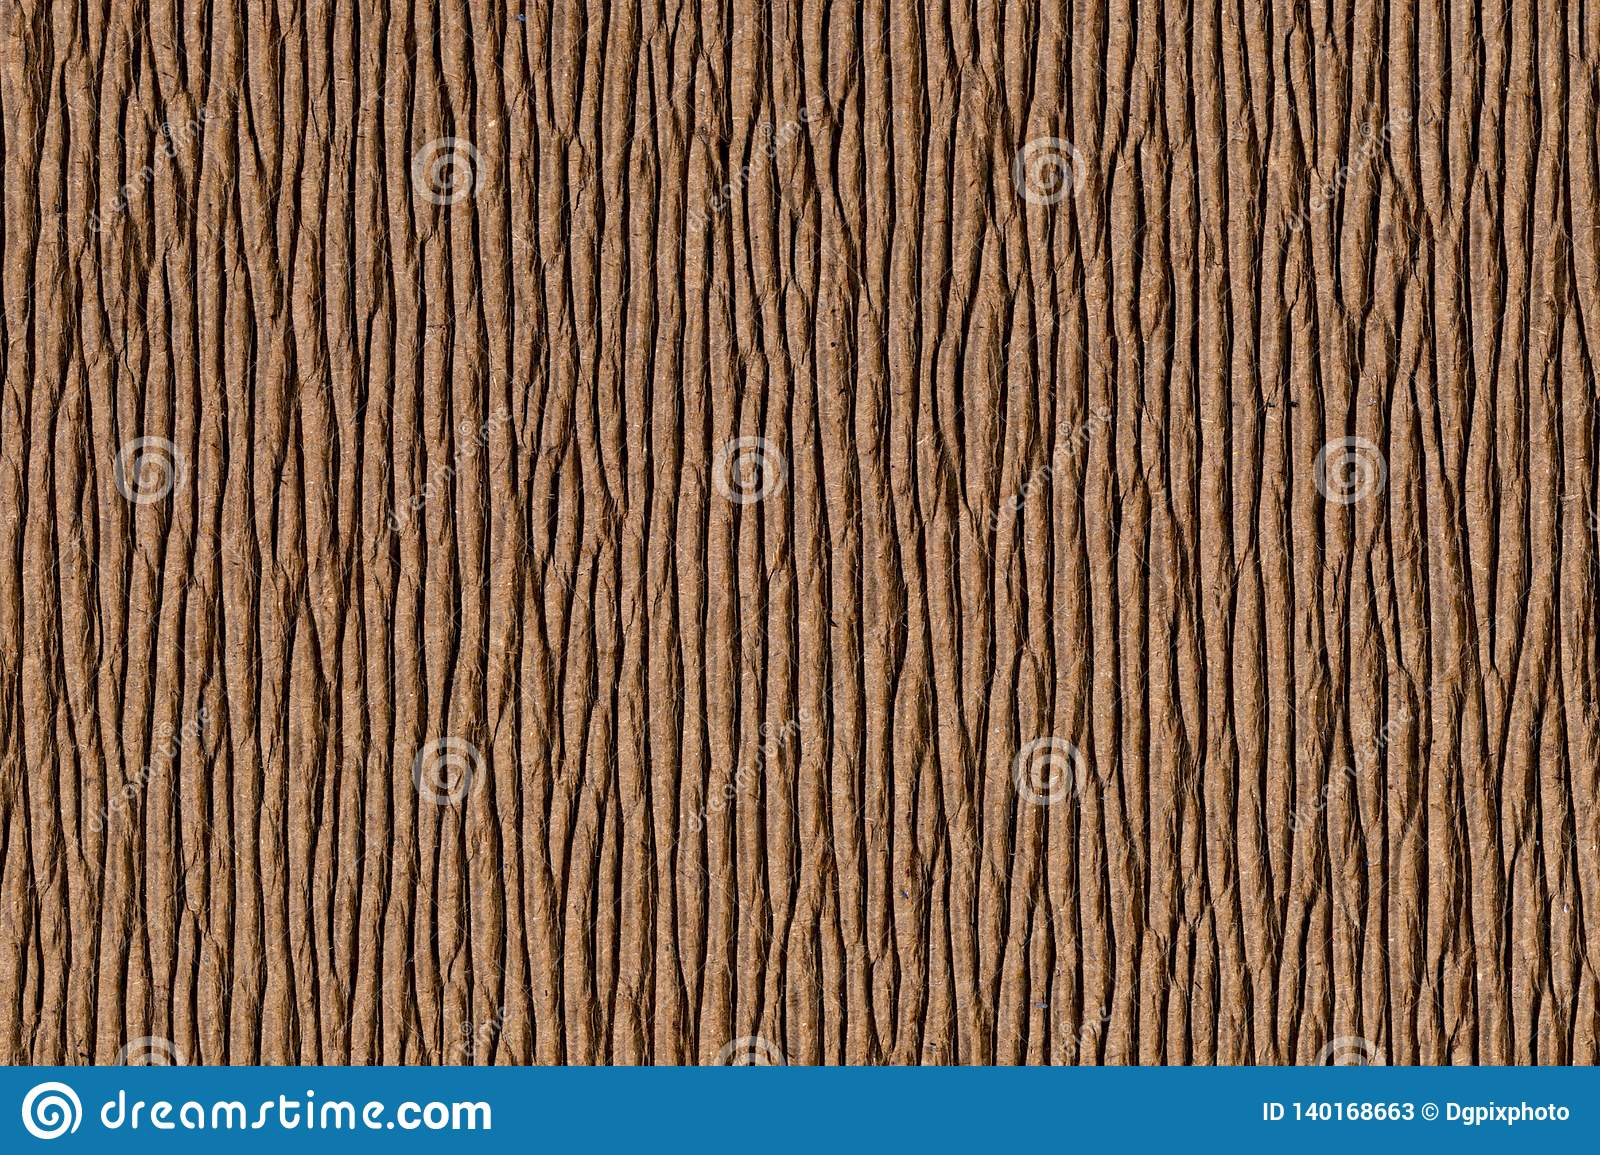 Corrugated cardboard similar to tree bark